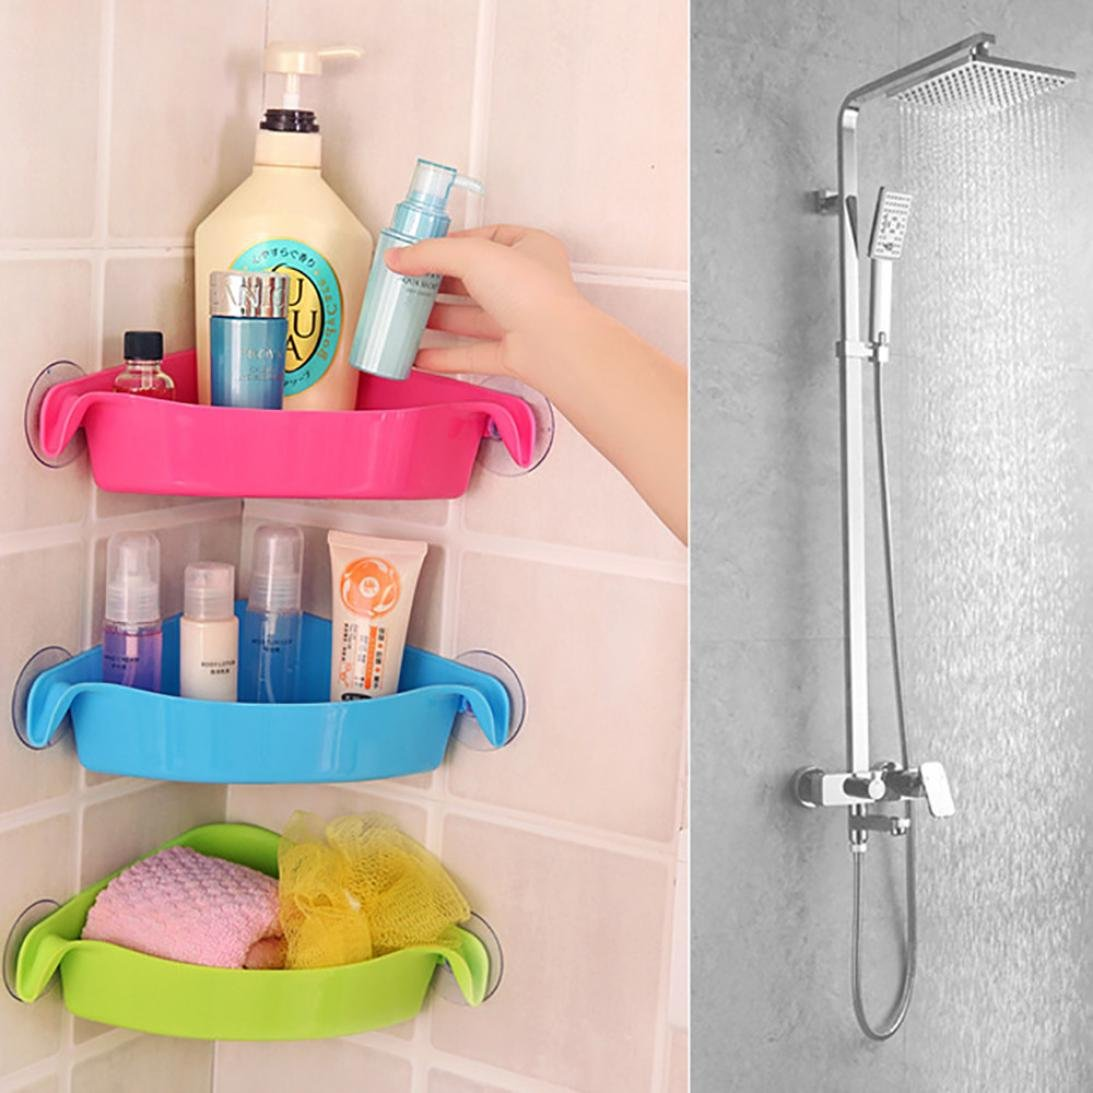 IGEMY Home Bathroom Corner Shelf Suction Rack Organizer Cup Storage Shower Wall Basket (Blue)